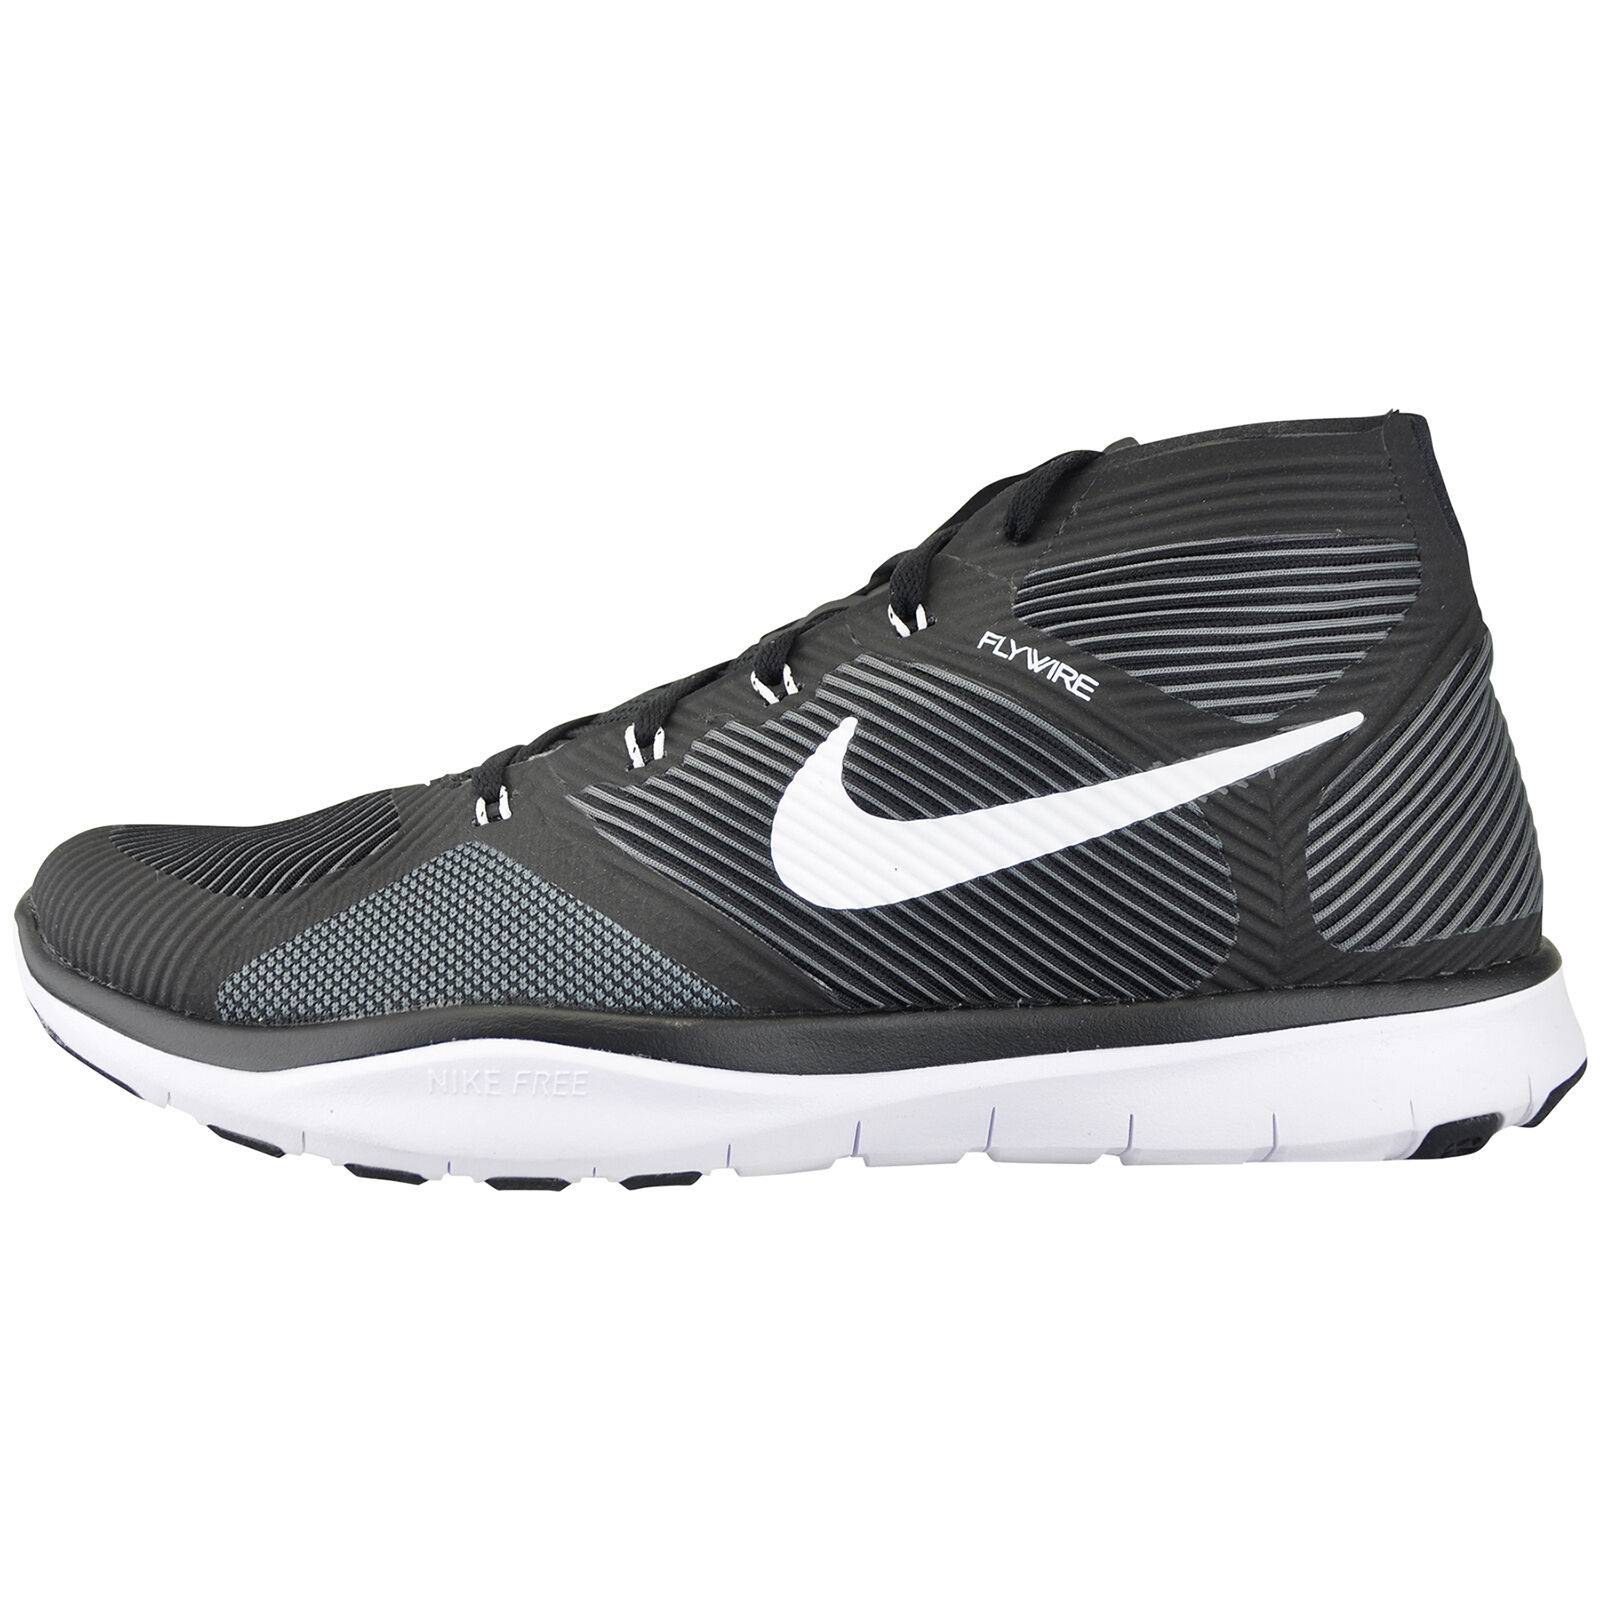 Nike Free Train Instinct 833274-010 Run Jogging Sneaker Freizeit Laufschuhe